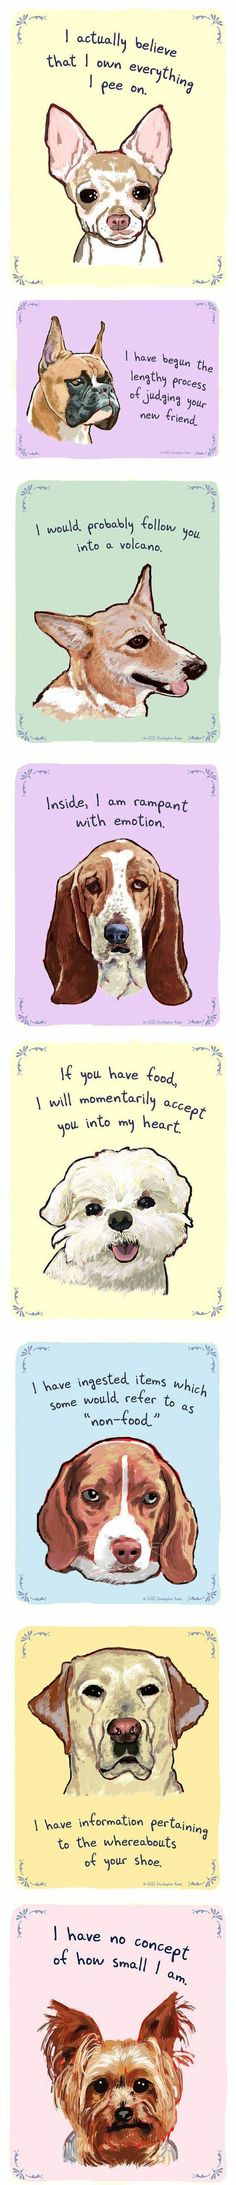 Dog inner monologues.